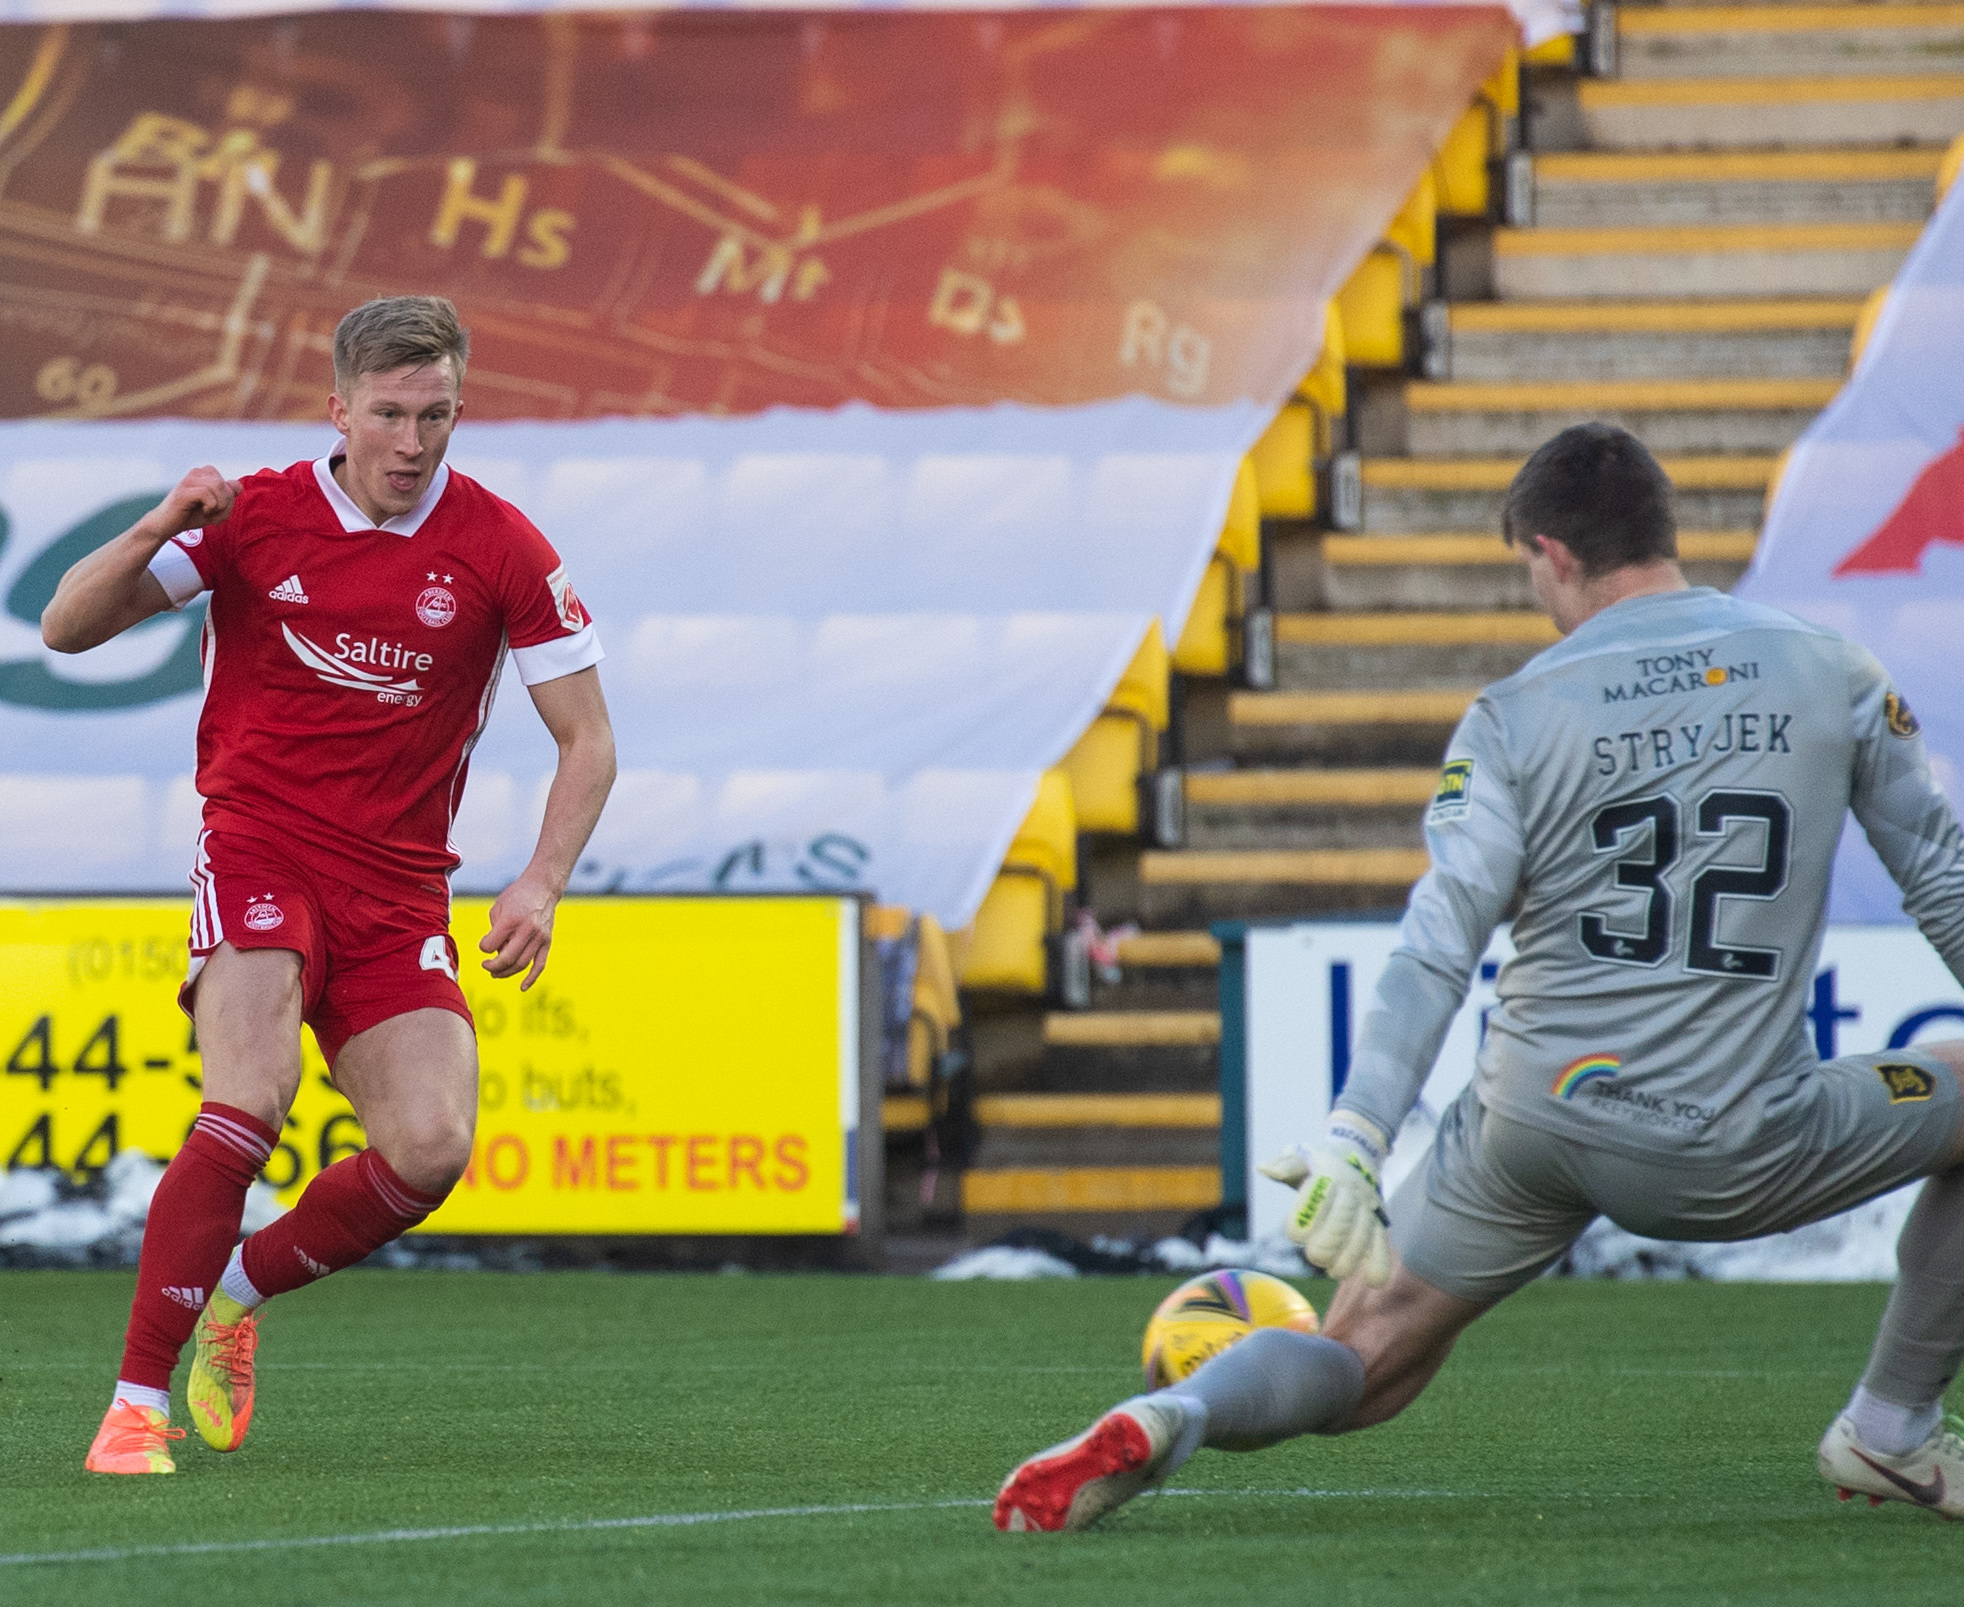 Livi run continues as need for strike options shows for Aberdeen